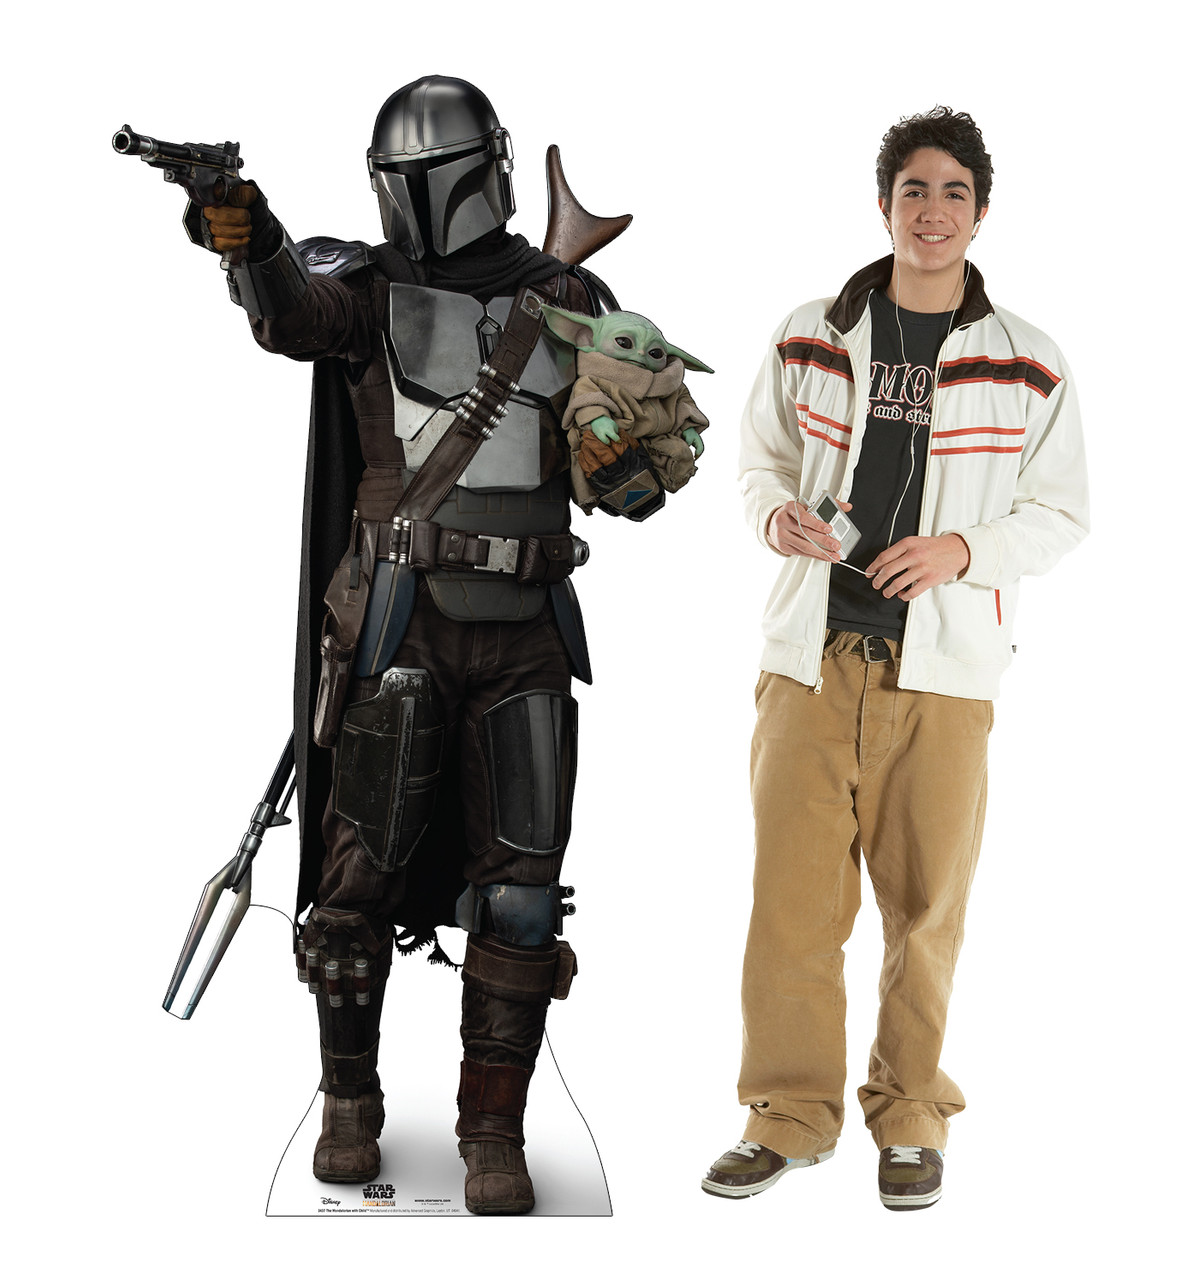 Life-size cardboard standee of The Mandalorian with Child with model.